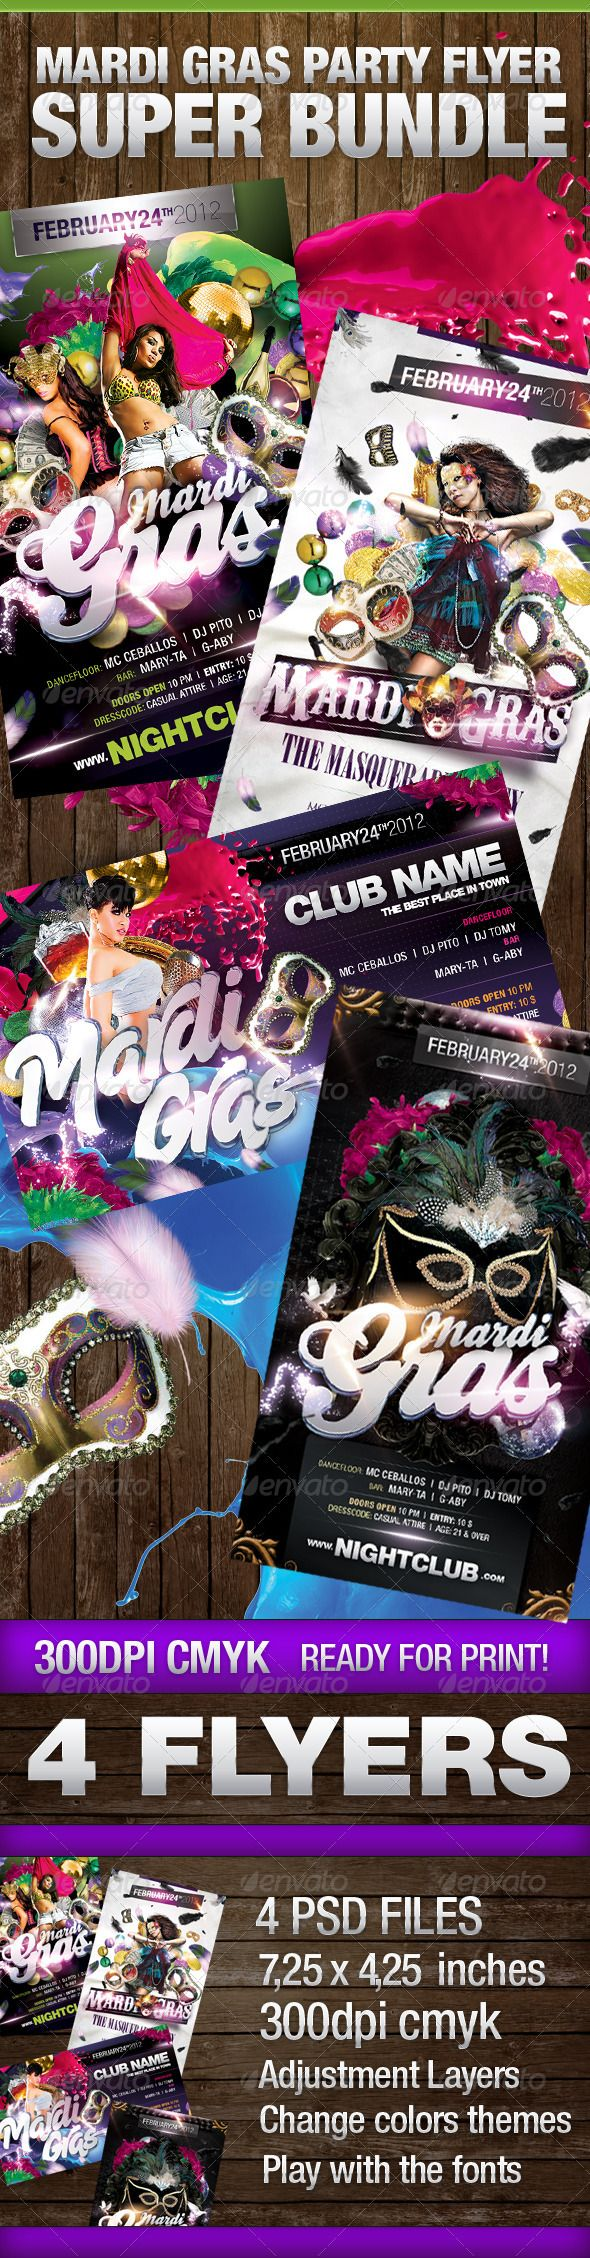 Mardi Gras Super Bundle  #GraphicRiver         Hope you enjoy this Super Bundle Mardi Gras Party!  	 Each Zip File has a Help file included with font details.  	 MODELS NOT INCLUDED IN THE MAIN PSD FILES   	 All Psd files are layered 300dpi, CMYK print ready and very well organised.  	 Links to the individual template preview pages:  	 Mardi Gras Party Template  graphicriver /item/mardi-gras-party-template/1538829?ref=wowdg 	 Mardi Gras Disco Club Version Flyer  graphicriver /item/mardi-gras-disco-club-version-flyer/1596168?ref=wowdg 	 Dark Theme Mardi Gras Flyer  graphicriver /item/dark-theme-mardi-gras-flyer-/1557857?ref=wowdg 	 White Mardi Gras Party Template  graphicriver /item/white-mardi-gras-party-template/1554979?ref=wowdg 	 Enjoy!     Created: 25February12 GraphicsFilesIncluded: PhotoshopPSD Layered: Yes MinimumAdobeCSVersion: CS PrintDimensions: 4.25×7.25 Tags: bundle #carnival #disco #flyer #mardi #mardigras #masquerade #night #party #sexy #woman